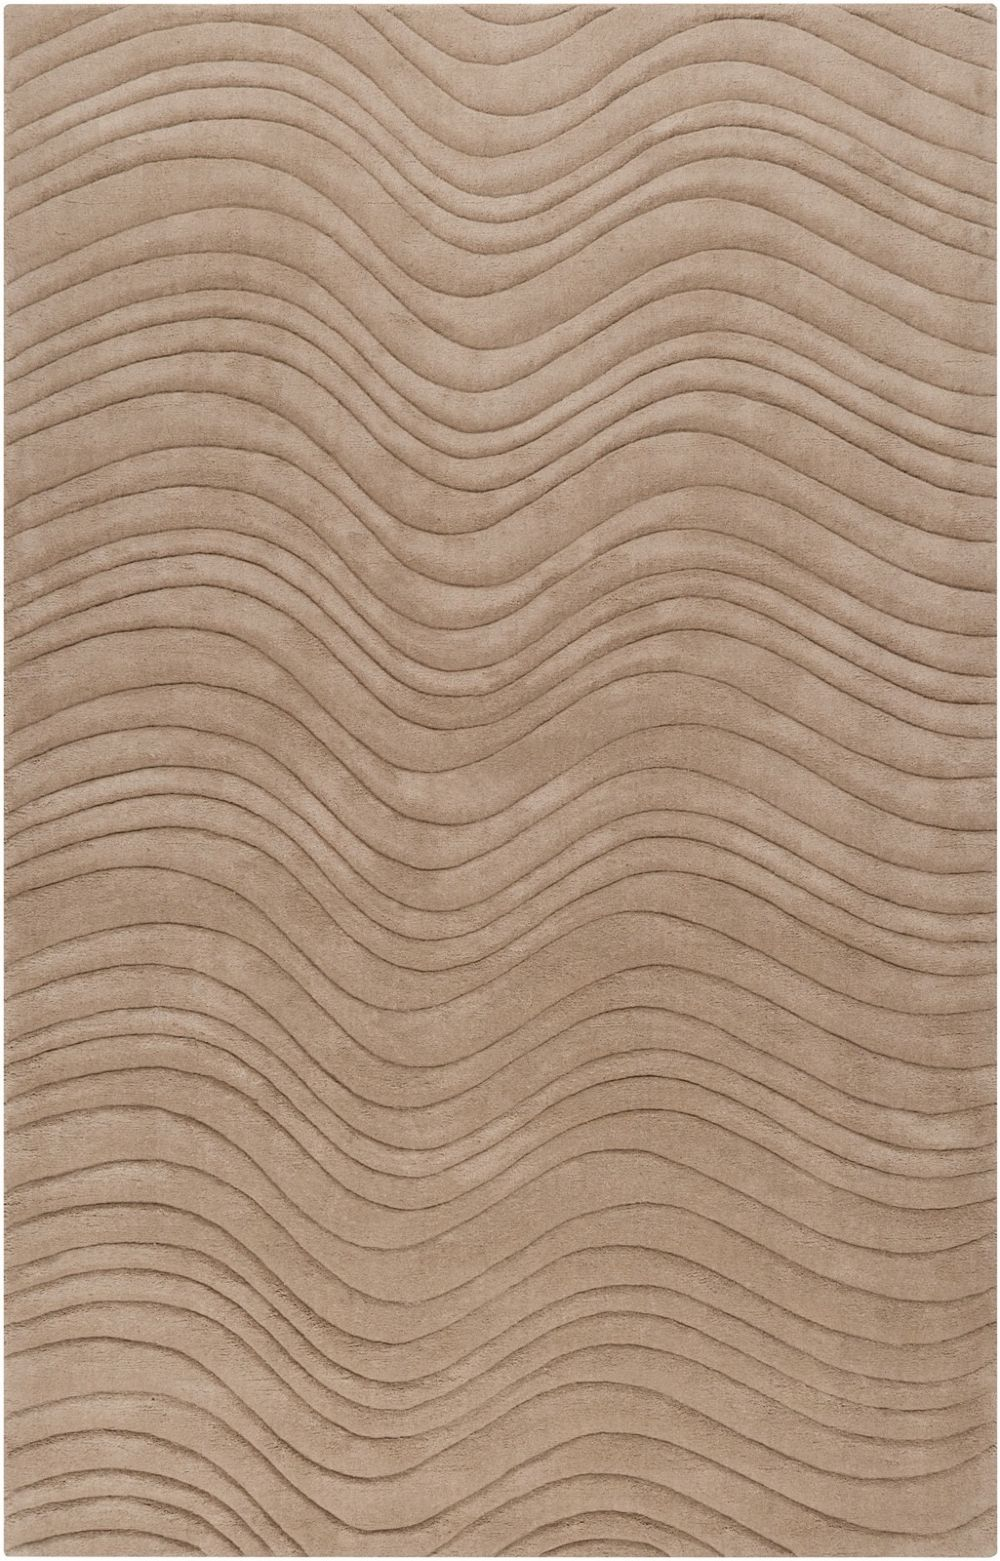 surya kinetic solid/striped area rug collection